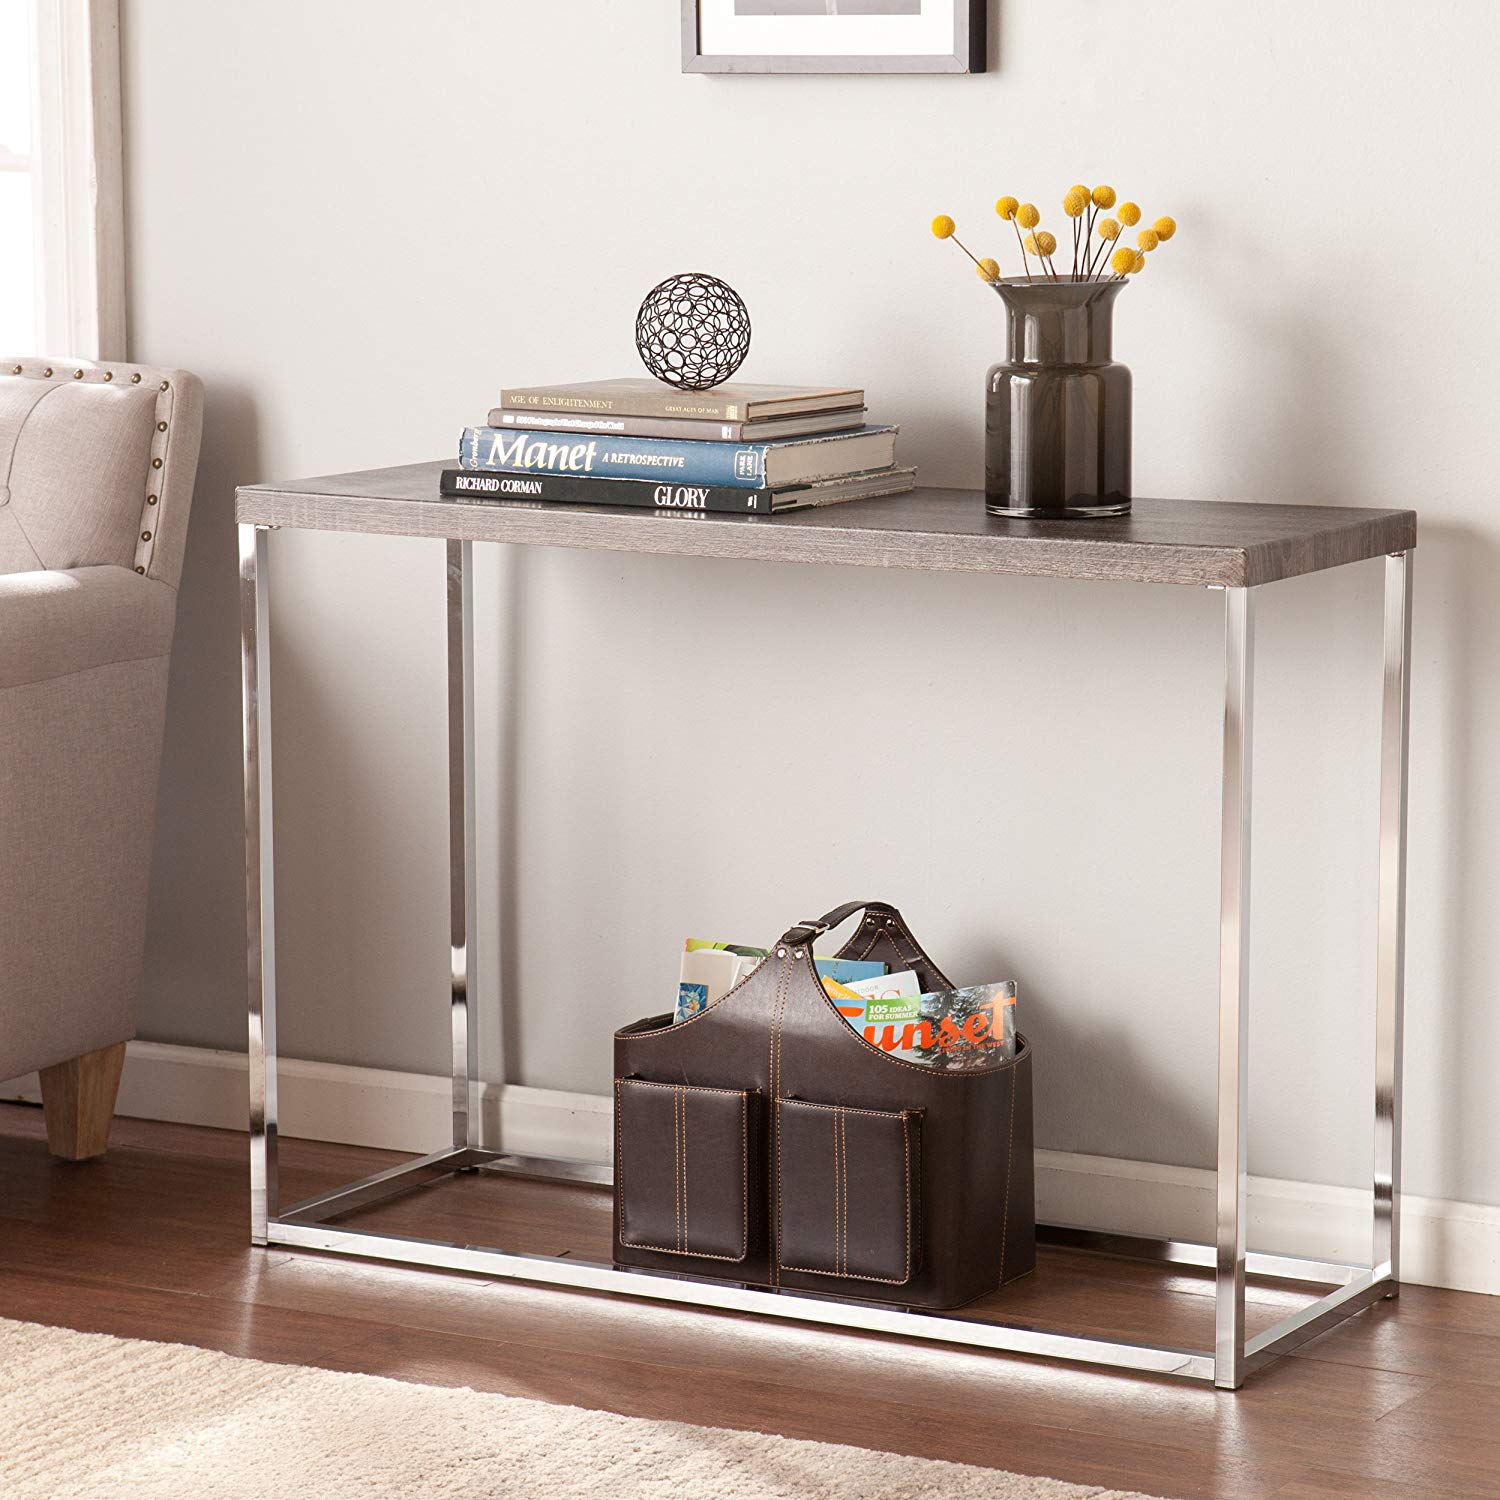 southern enterprises glynn sofa console table sun round metal accent bleached gray with chrome finish kitchen dining black battery operated lights for decorations pottery barn end